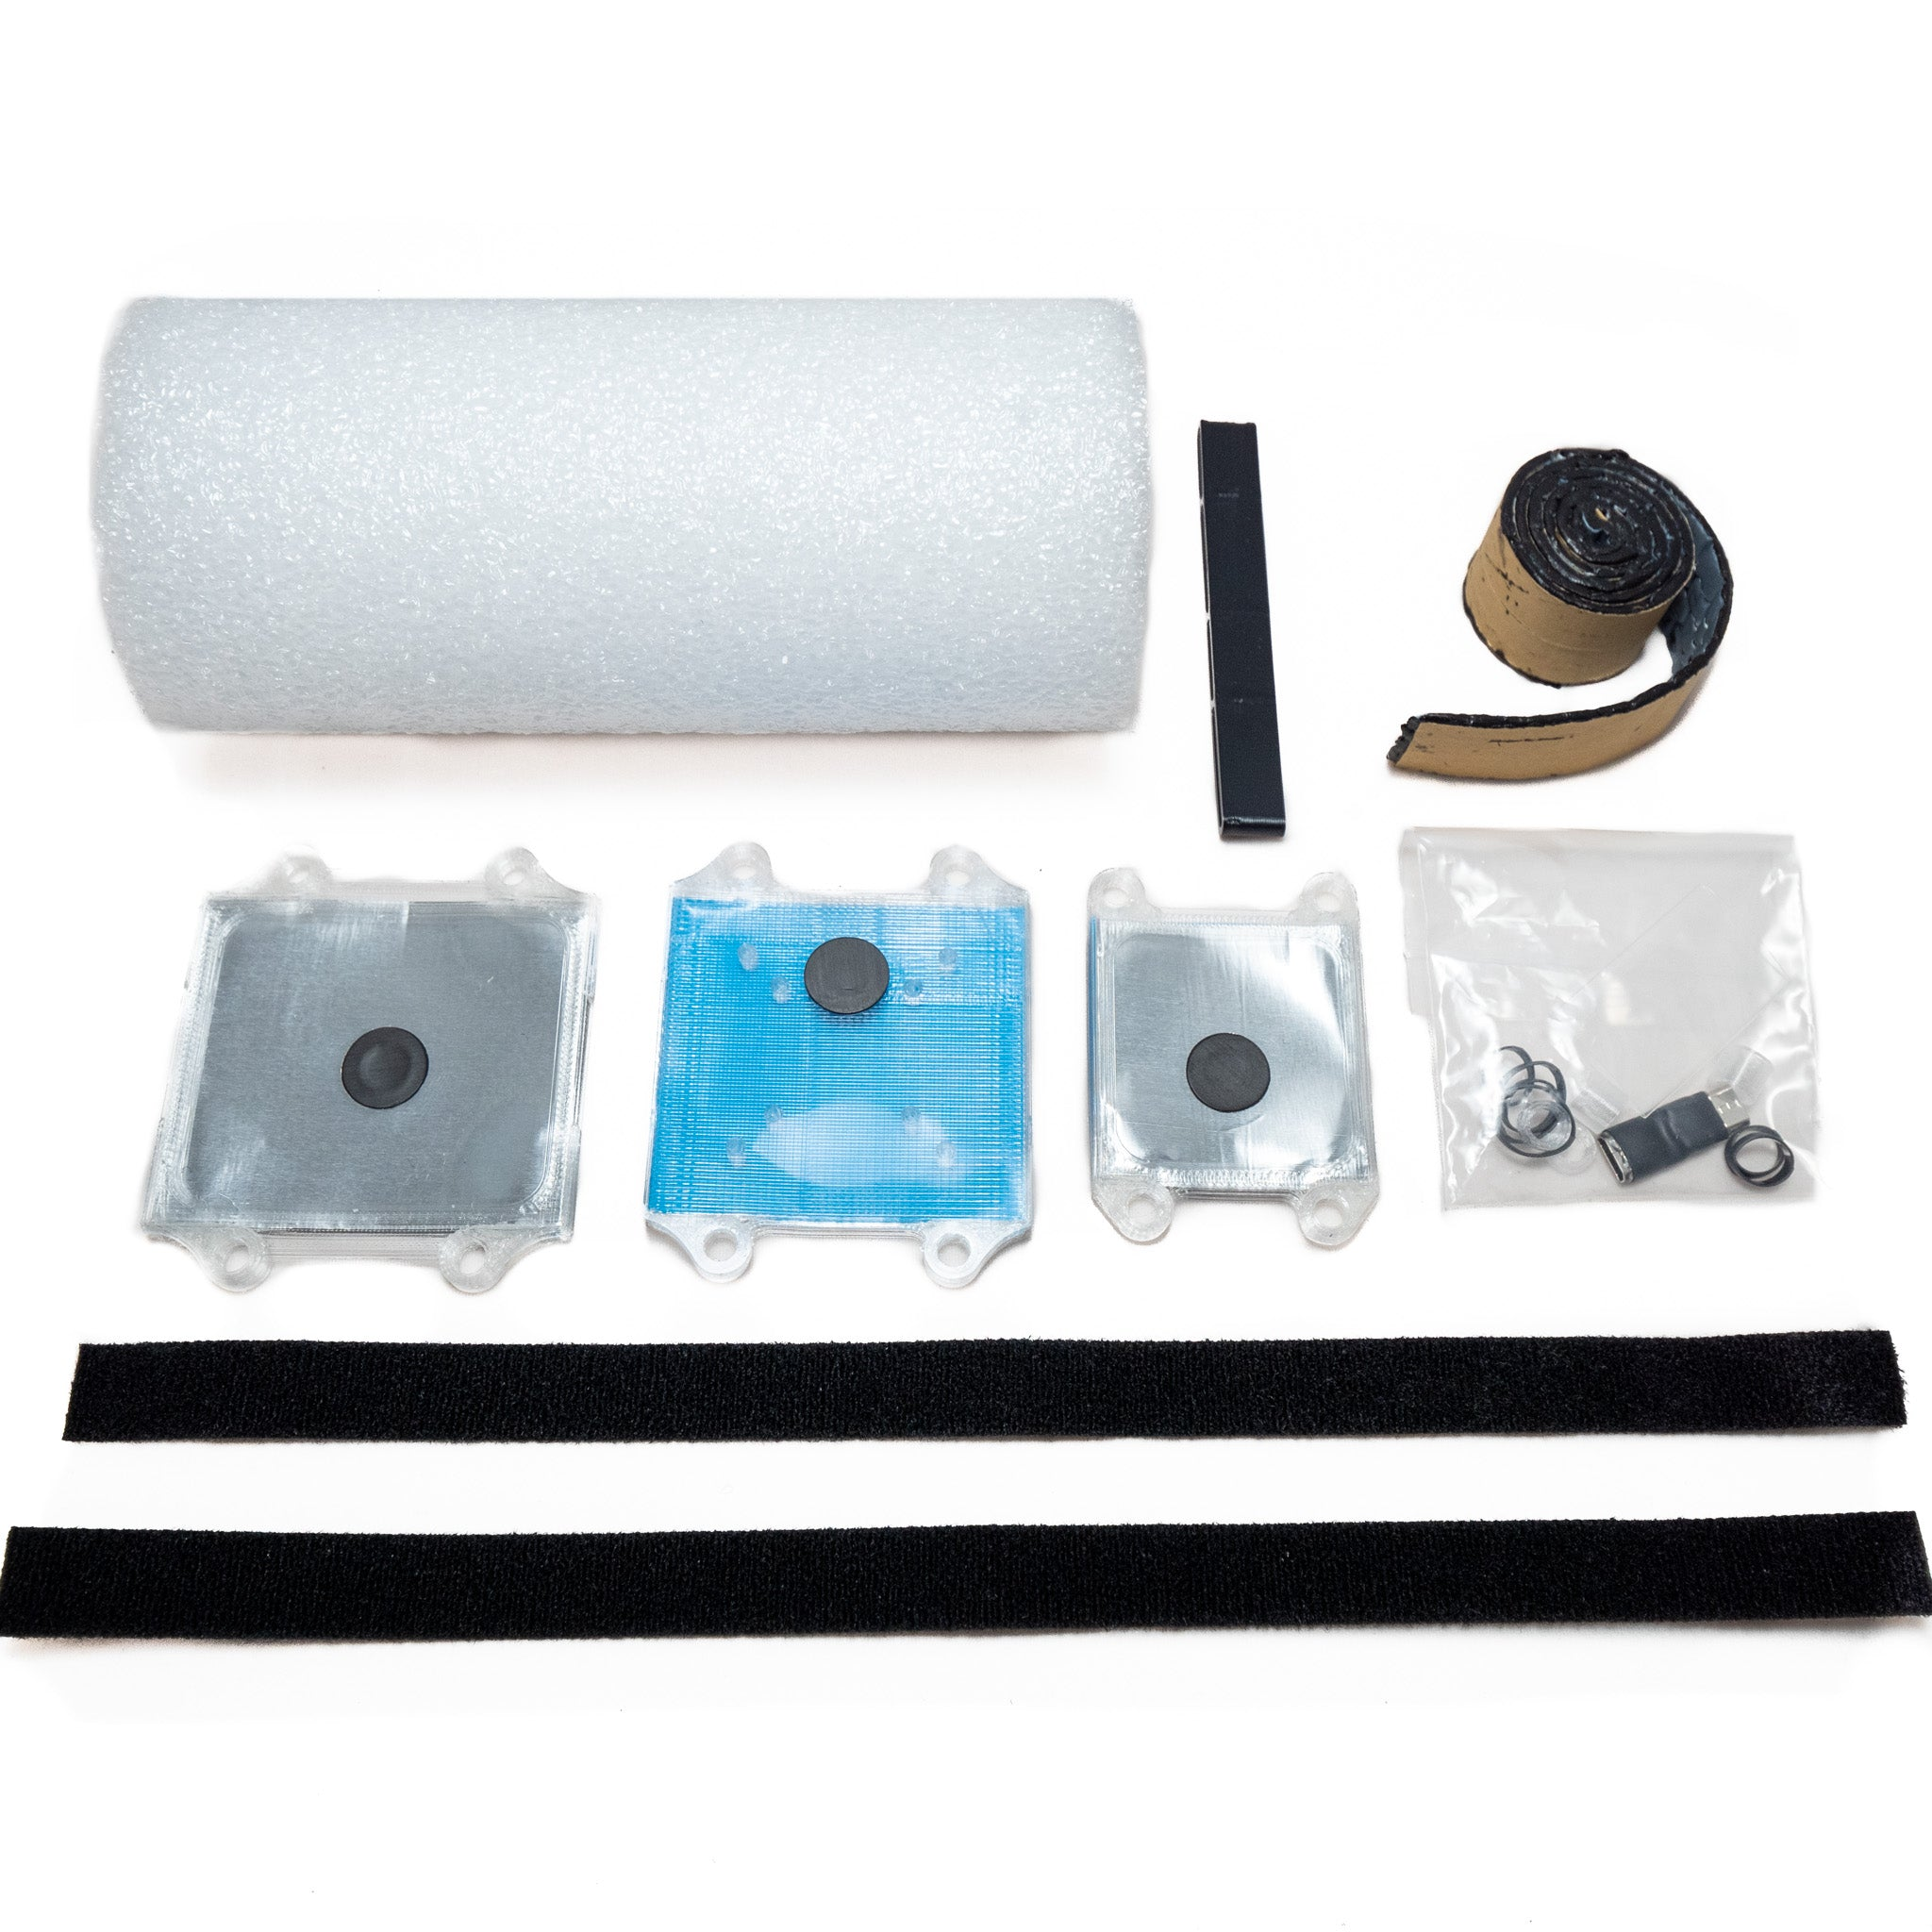 Deep6 Waterproof Kit